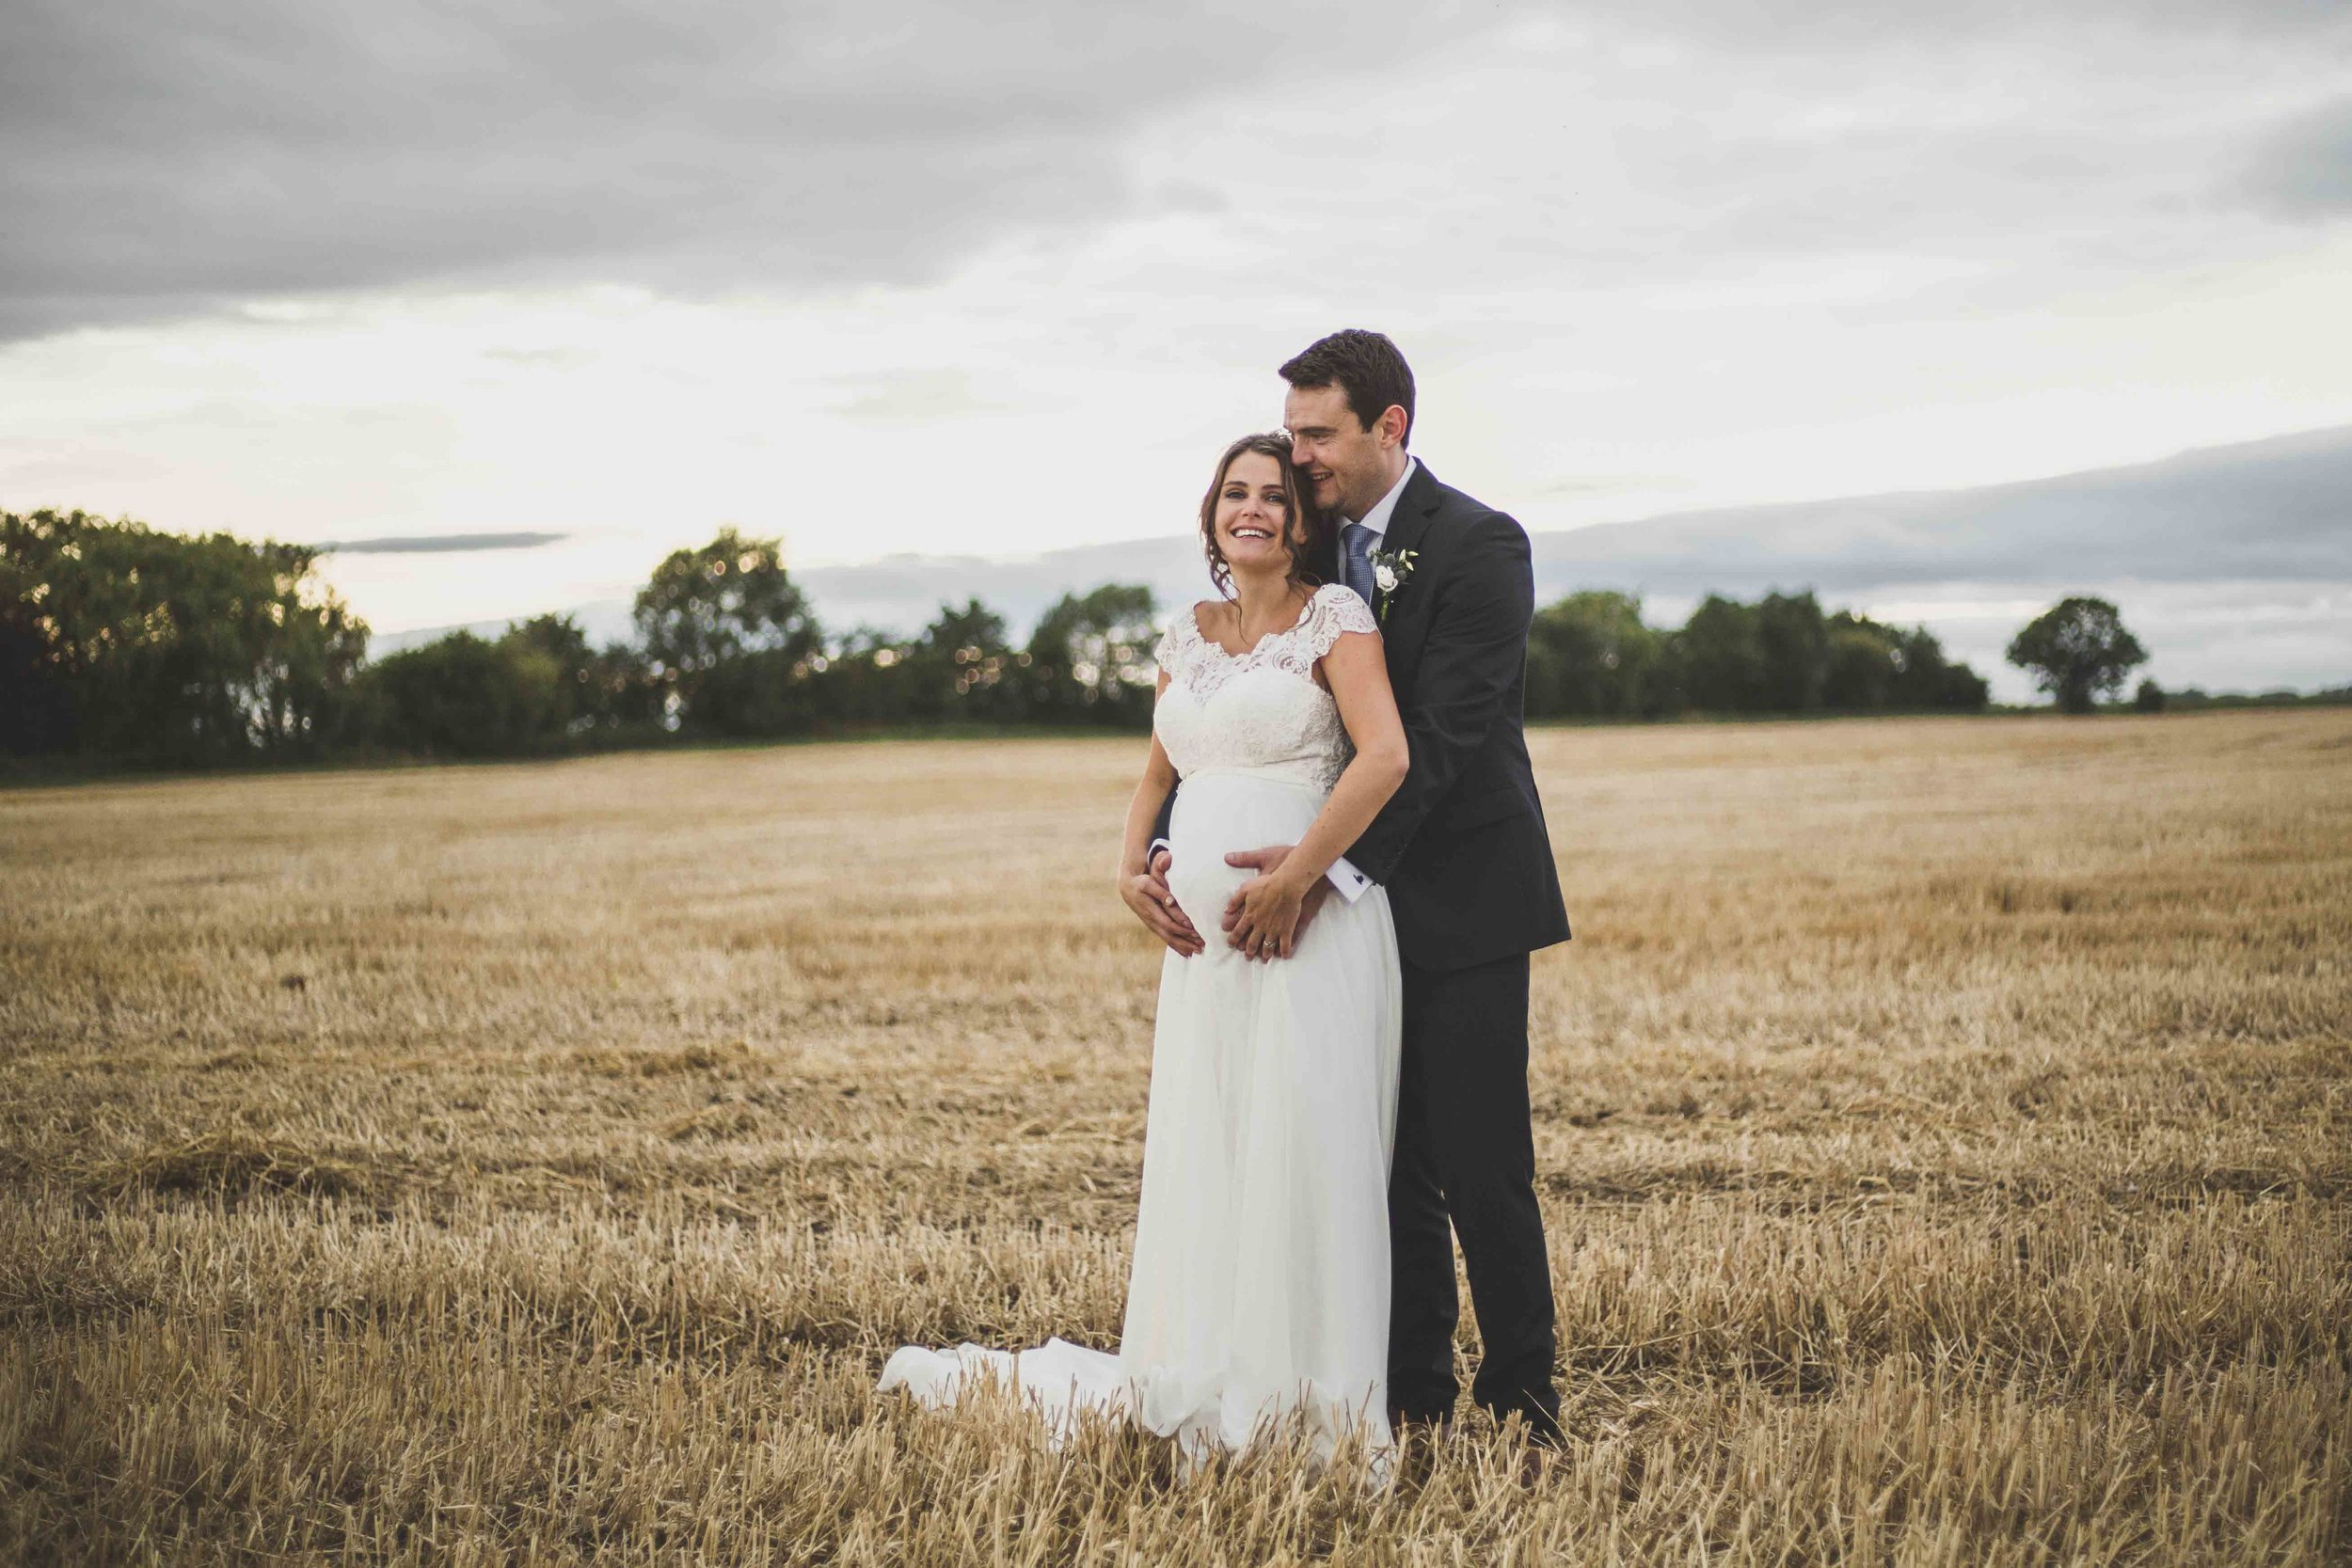 rustic wedding photographer hull.jpg